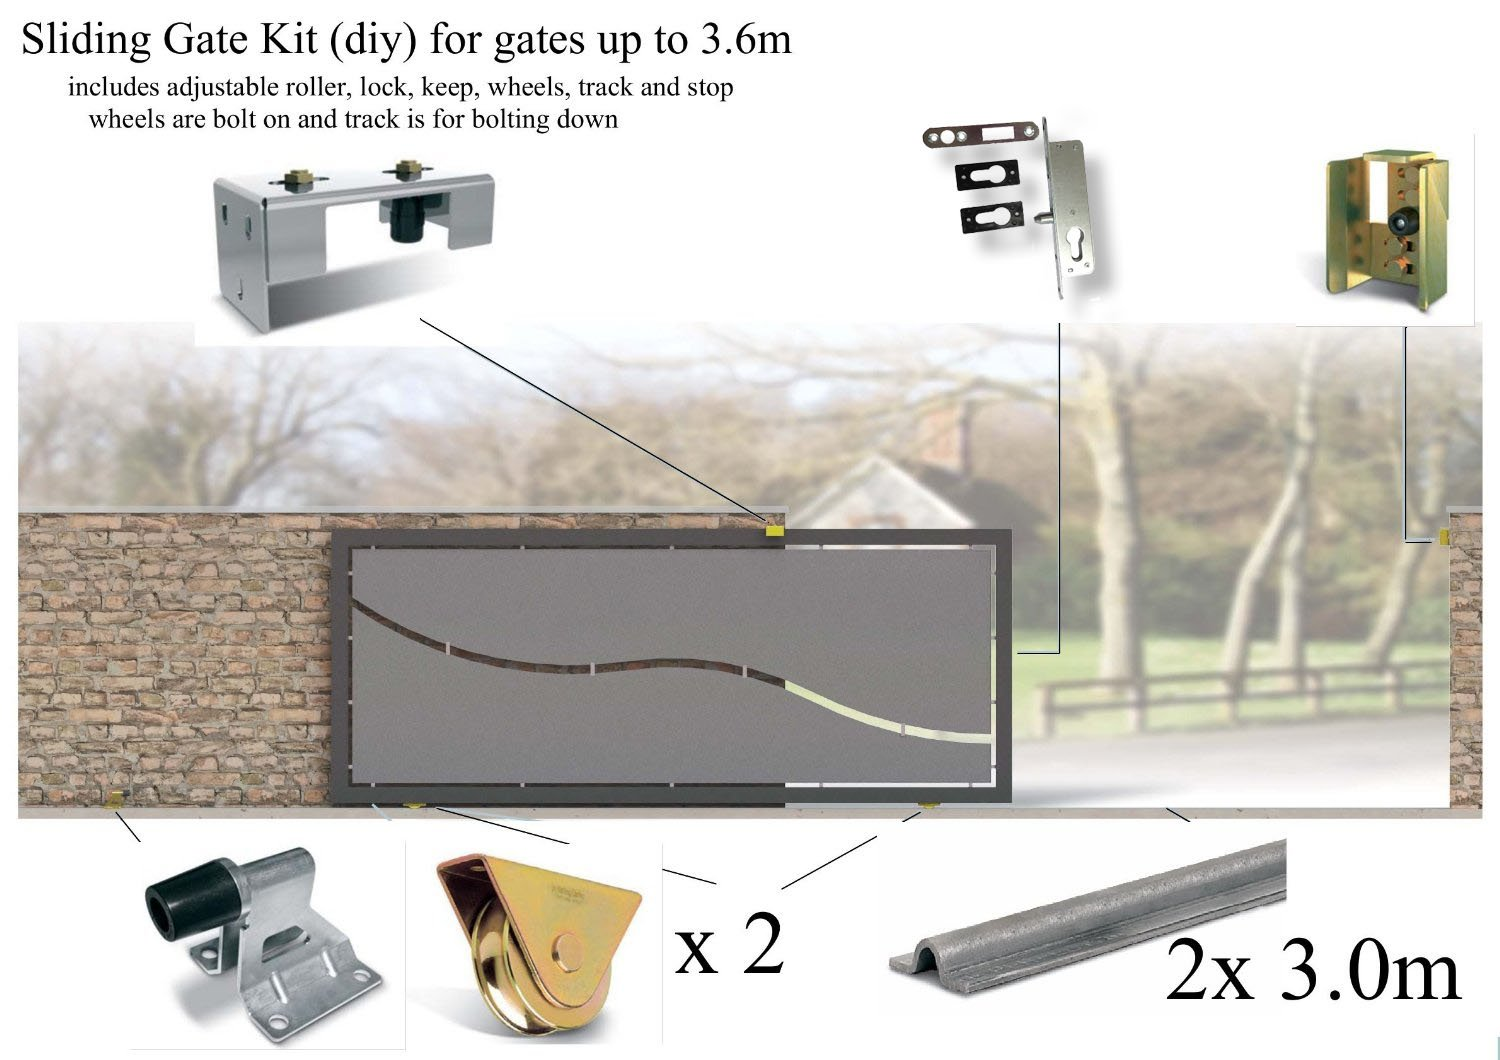 Bolt Down Sliding Gate Kits, contains Rails, Keep, Latch Housing, All basic Hardware Various sizes Available (Up to 1.8M) Rolling Centre